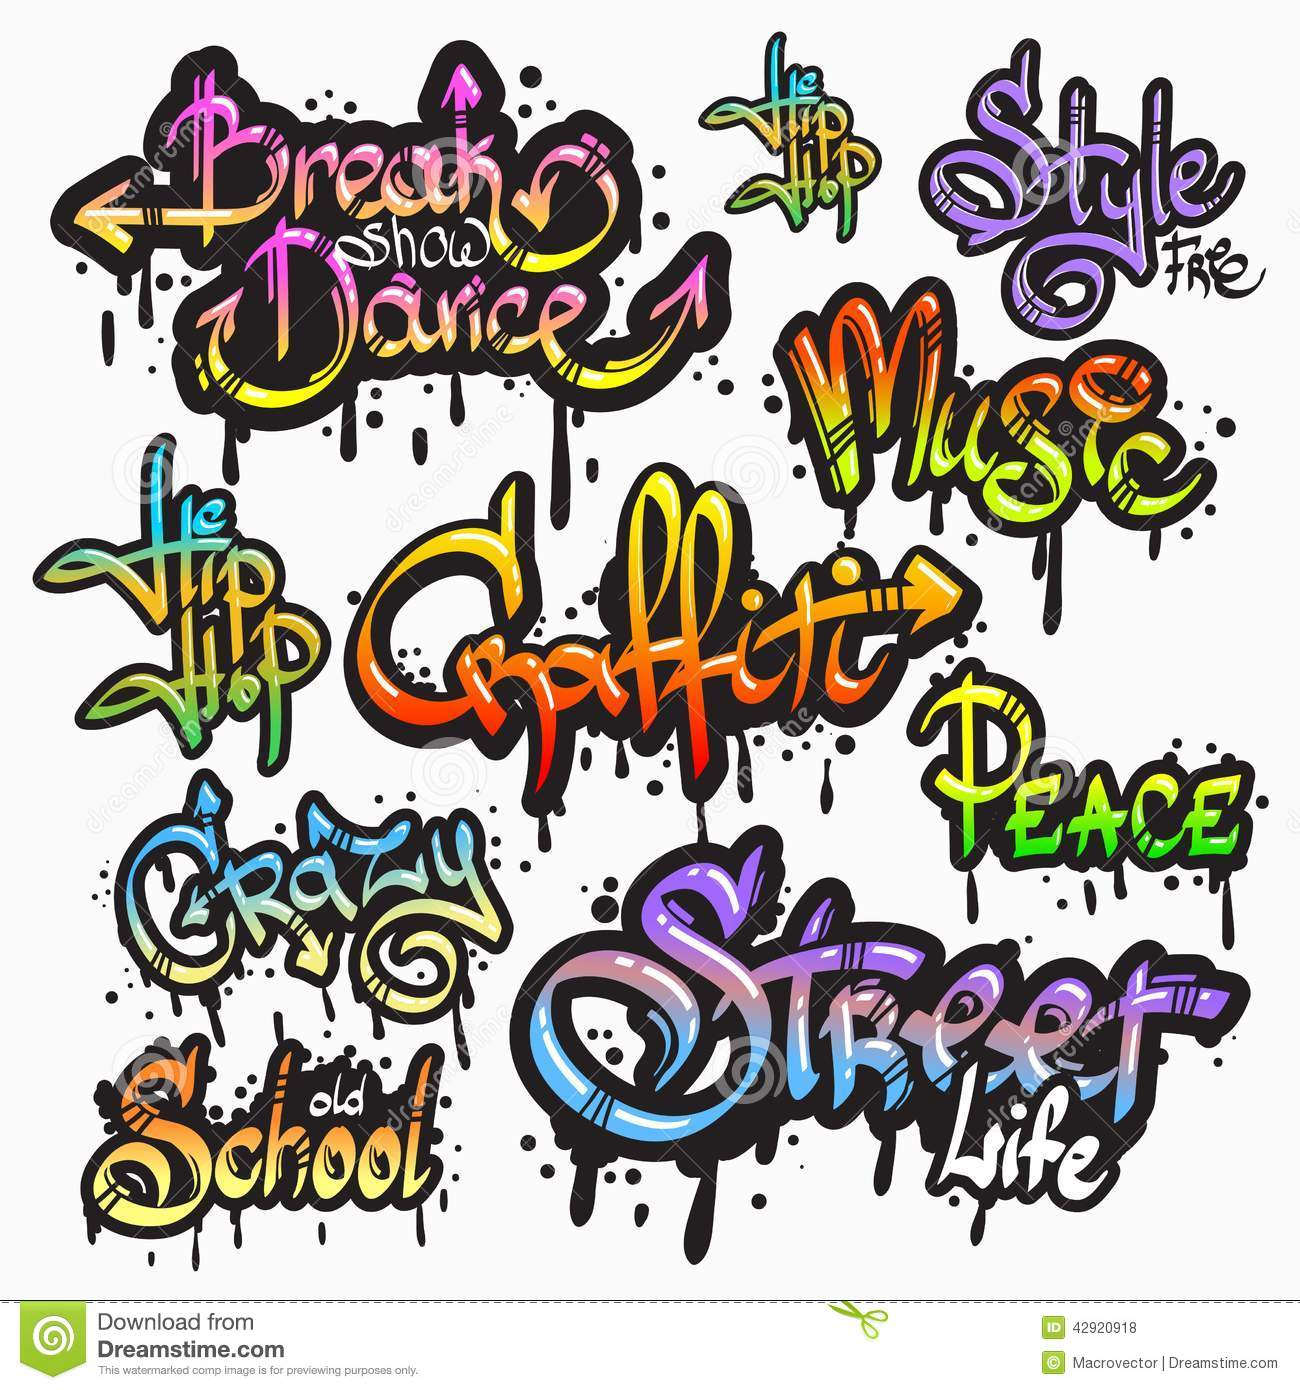 Free Graffiti Creator Graffiti Creator Names Free Graffiti Art Inspirations